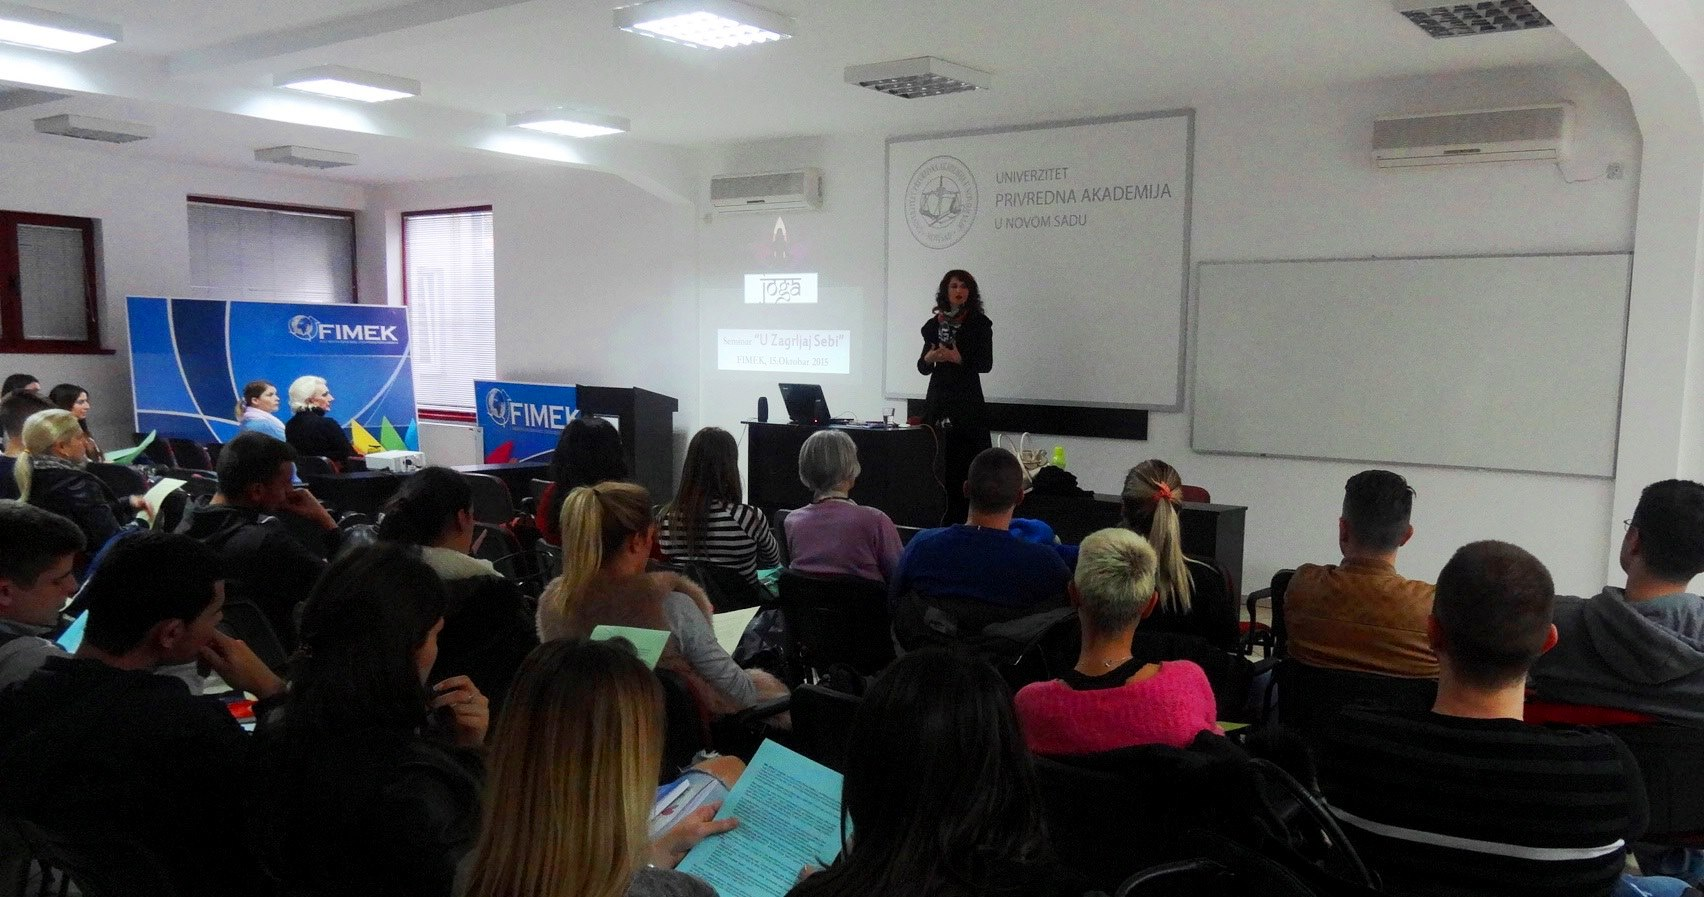 Devi Mohan's intro talk before conducting the Yoga and Pranayama seminar at FIMEK, private University in Novi Sad, Serbia, 2015.jpg